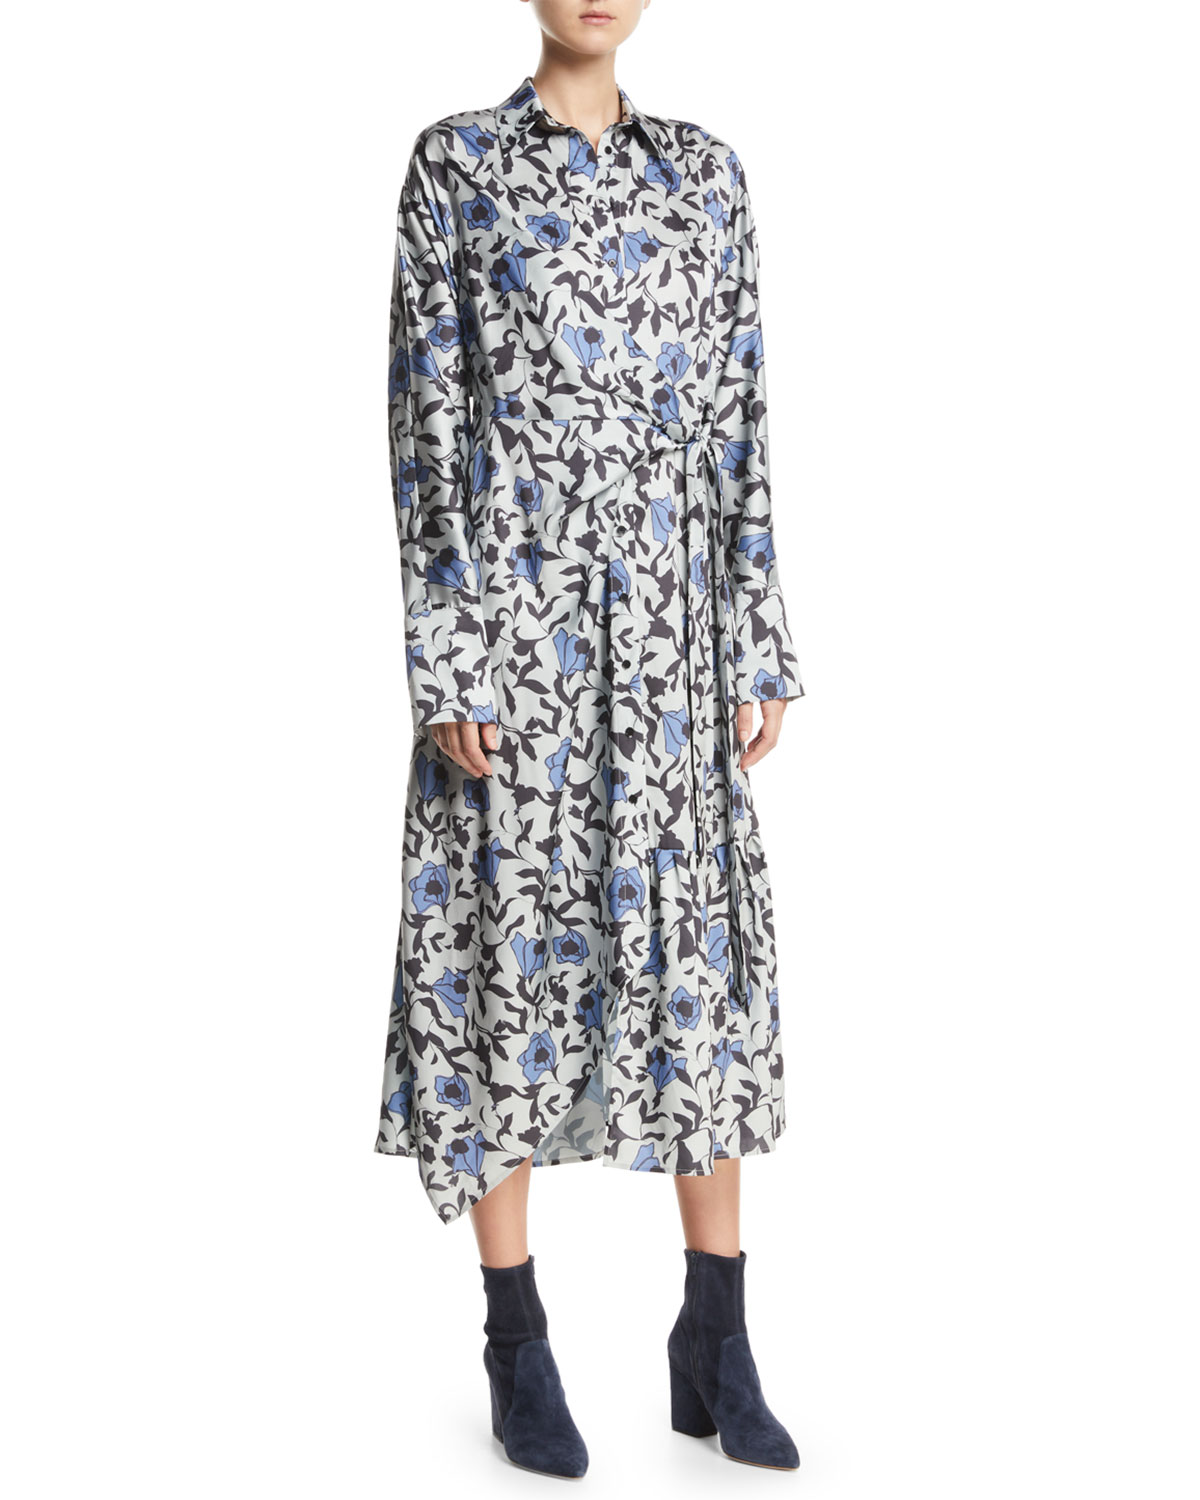 CHRISTIAN WIJNANTS Dabba Floral-Print Button-Front Shirtdress in Black Pattern